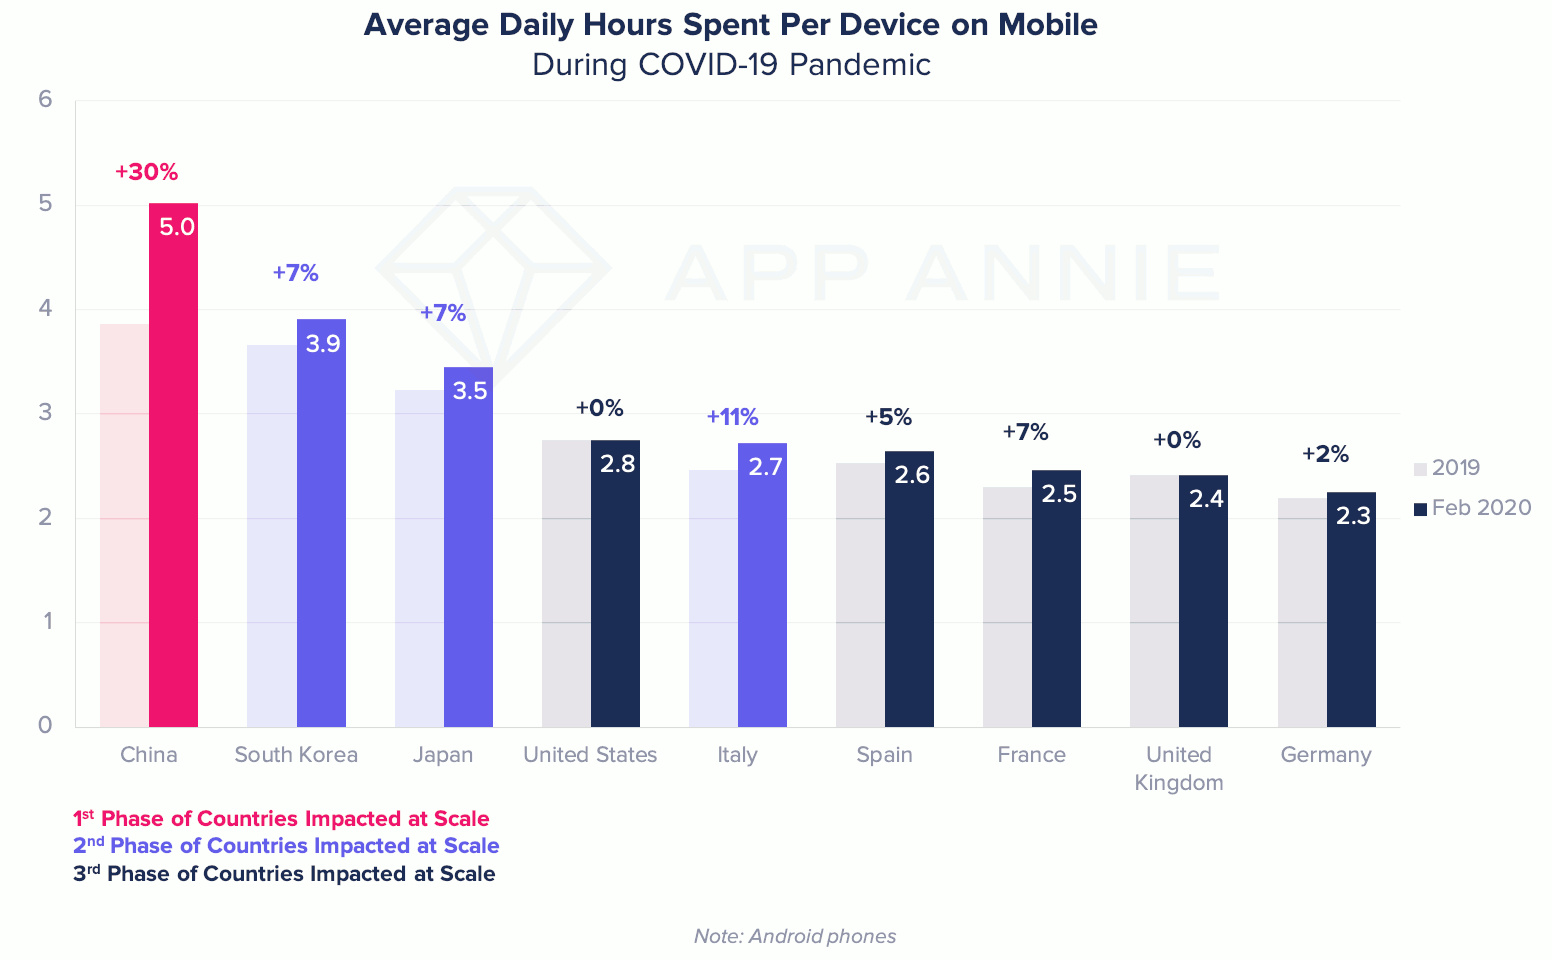 Average daily hours spent per device on mobile